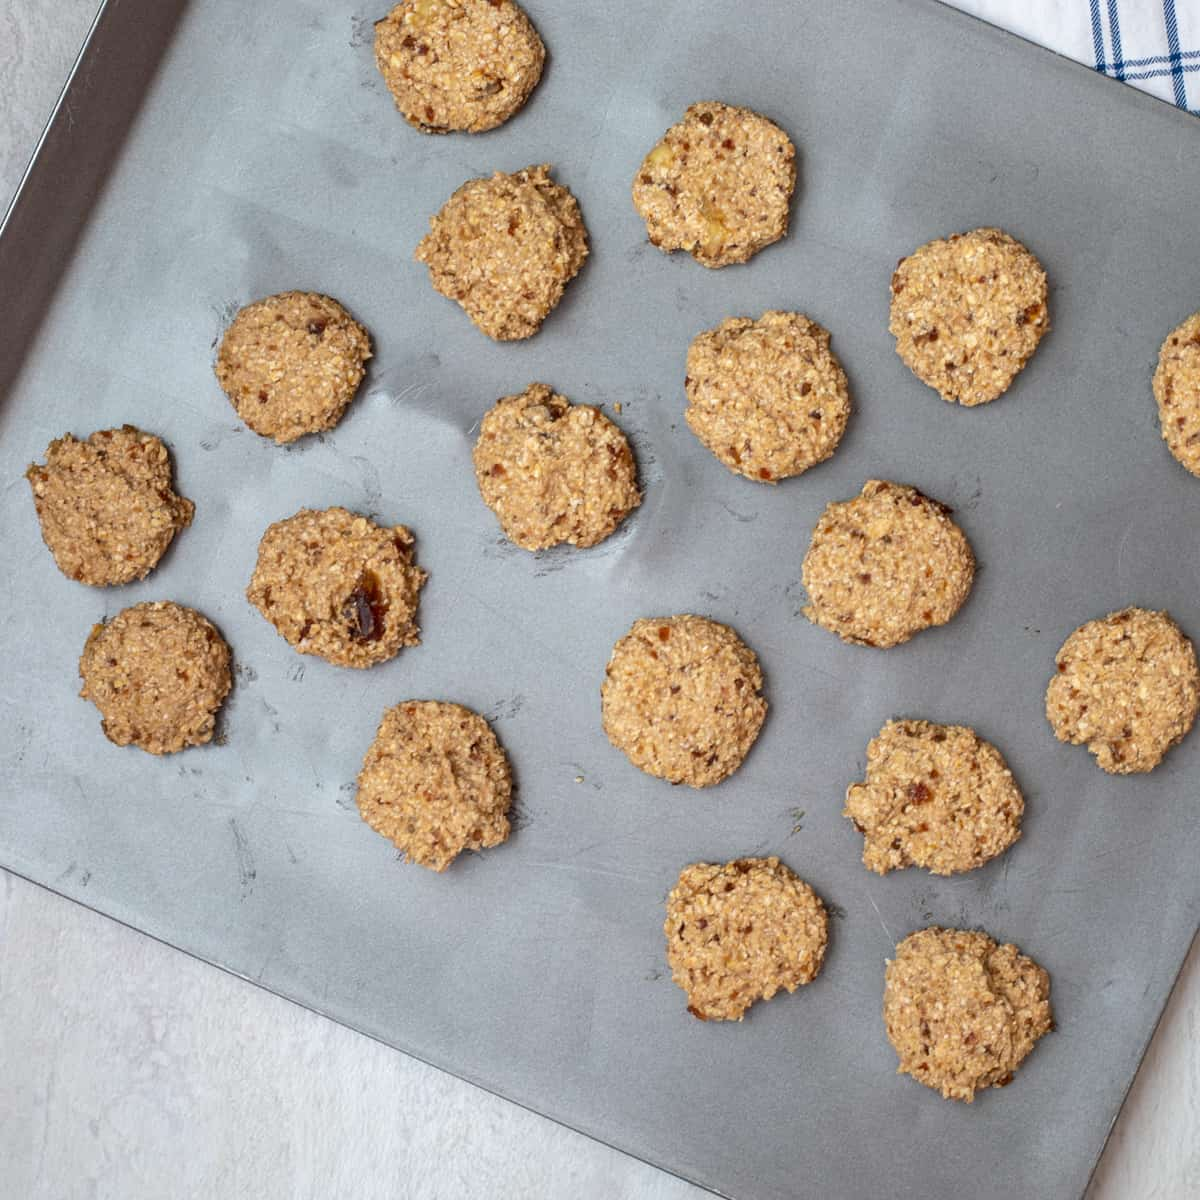 Banana Oat Cookies on baking sheet ready for oven.